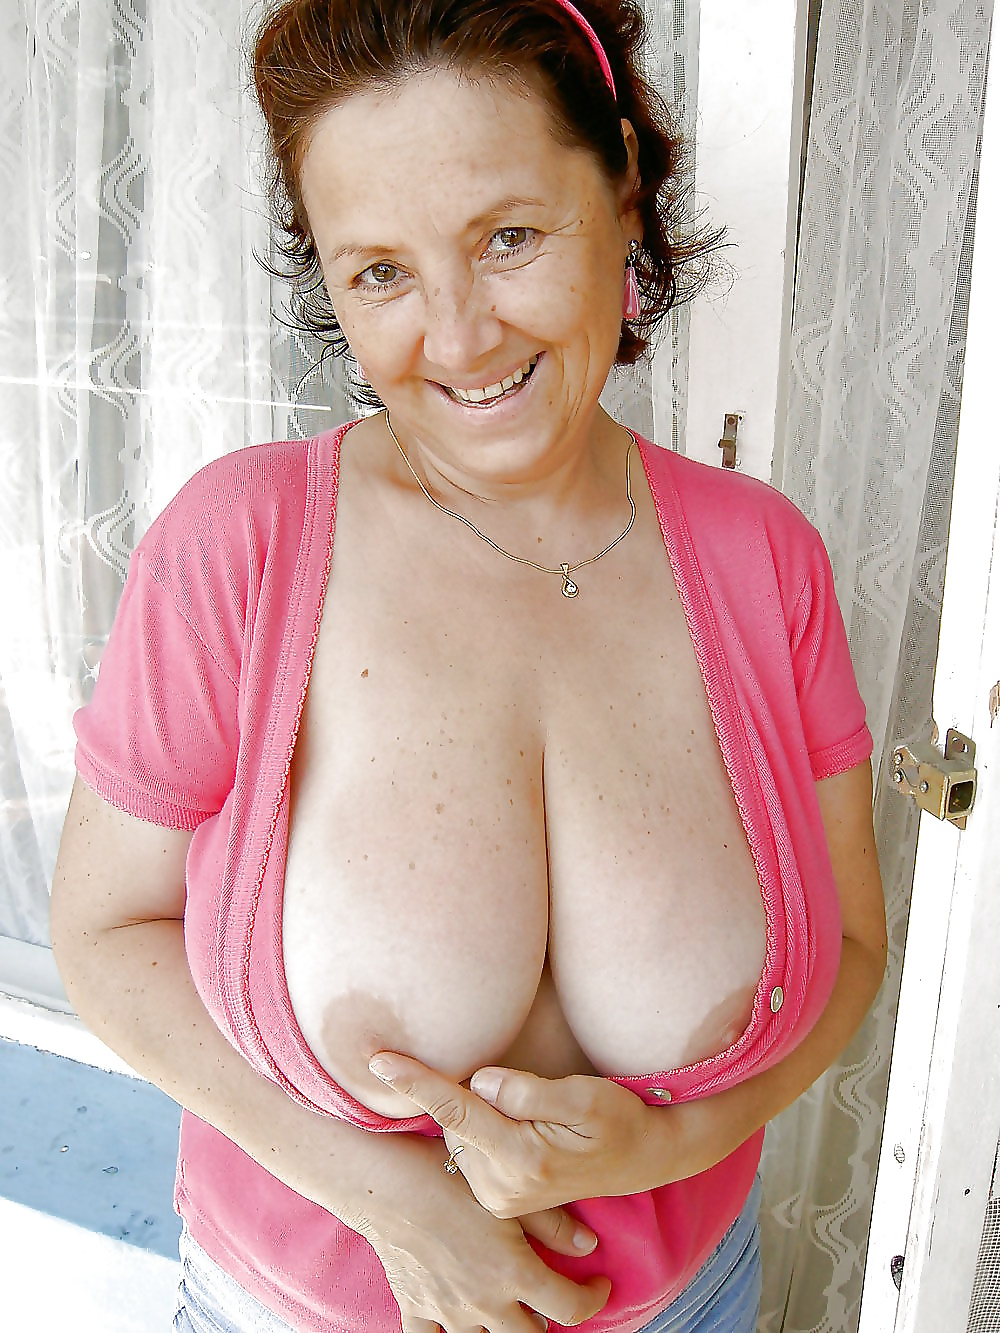 Would mature hot tits